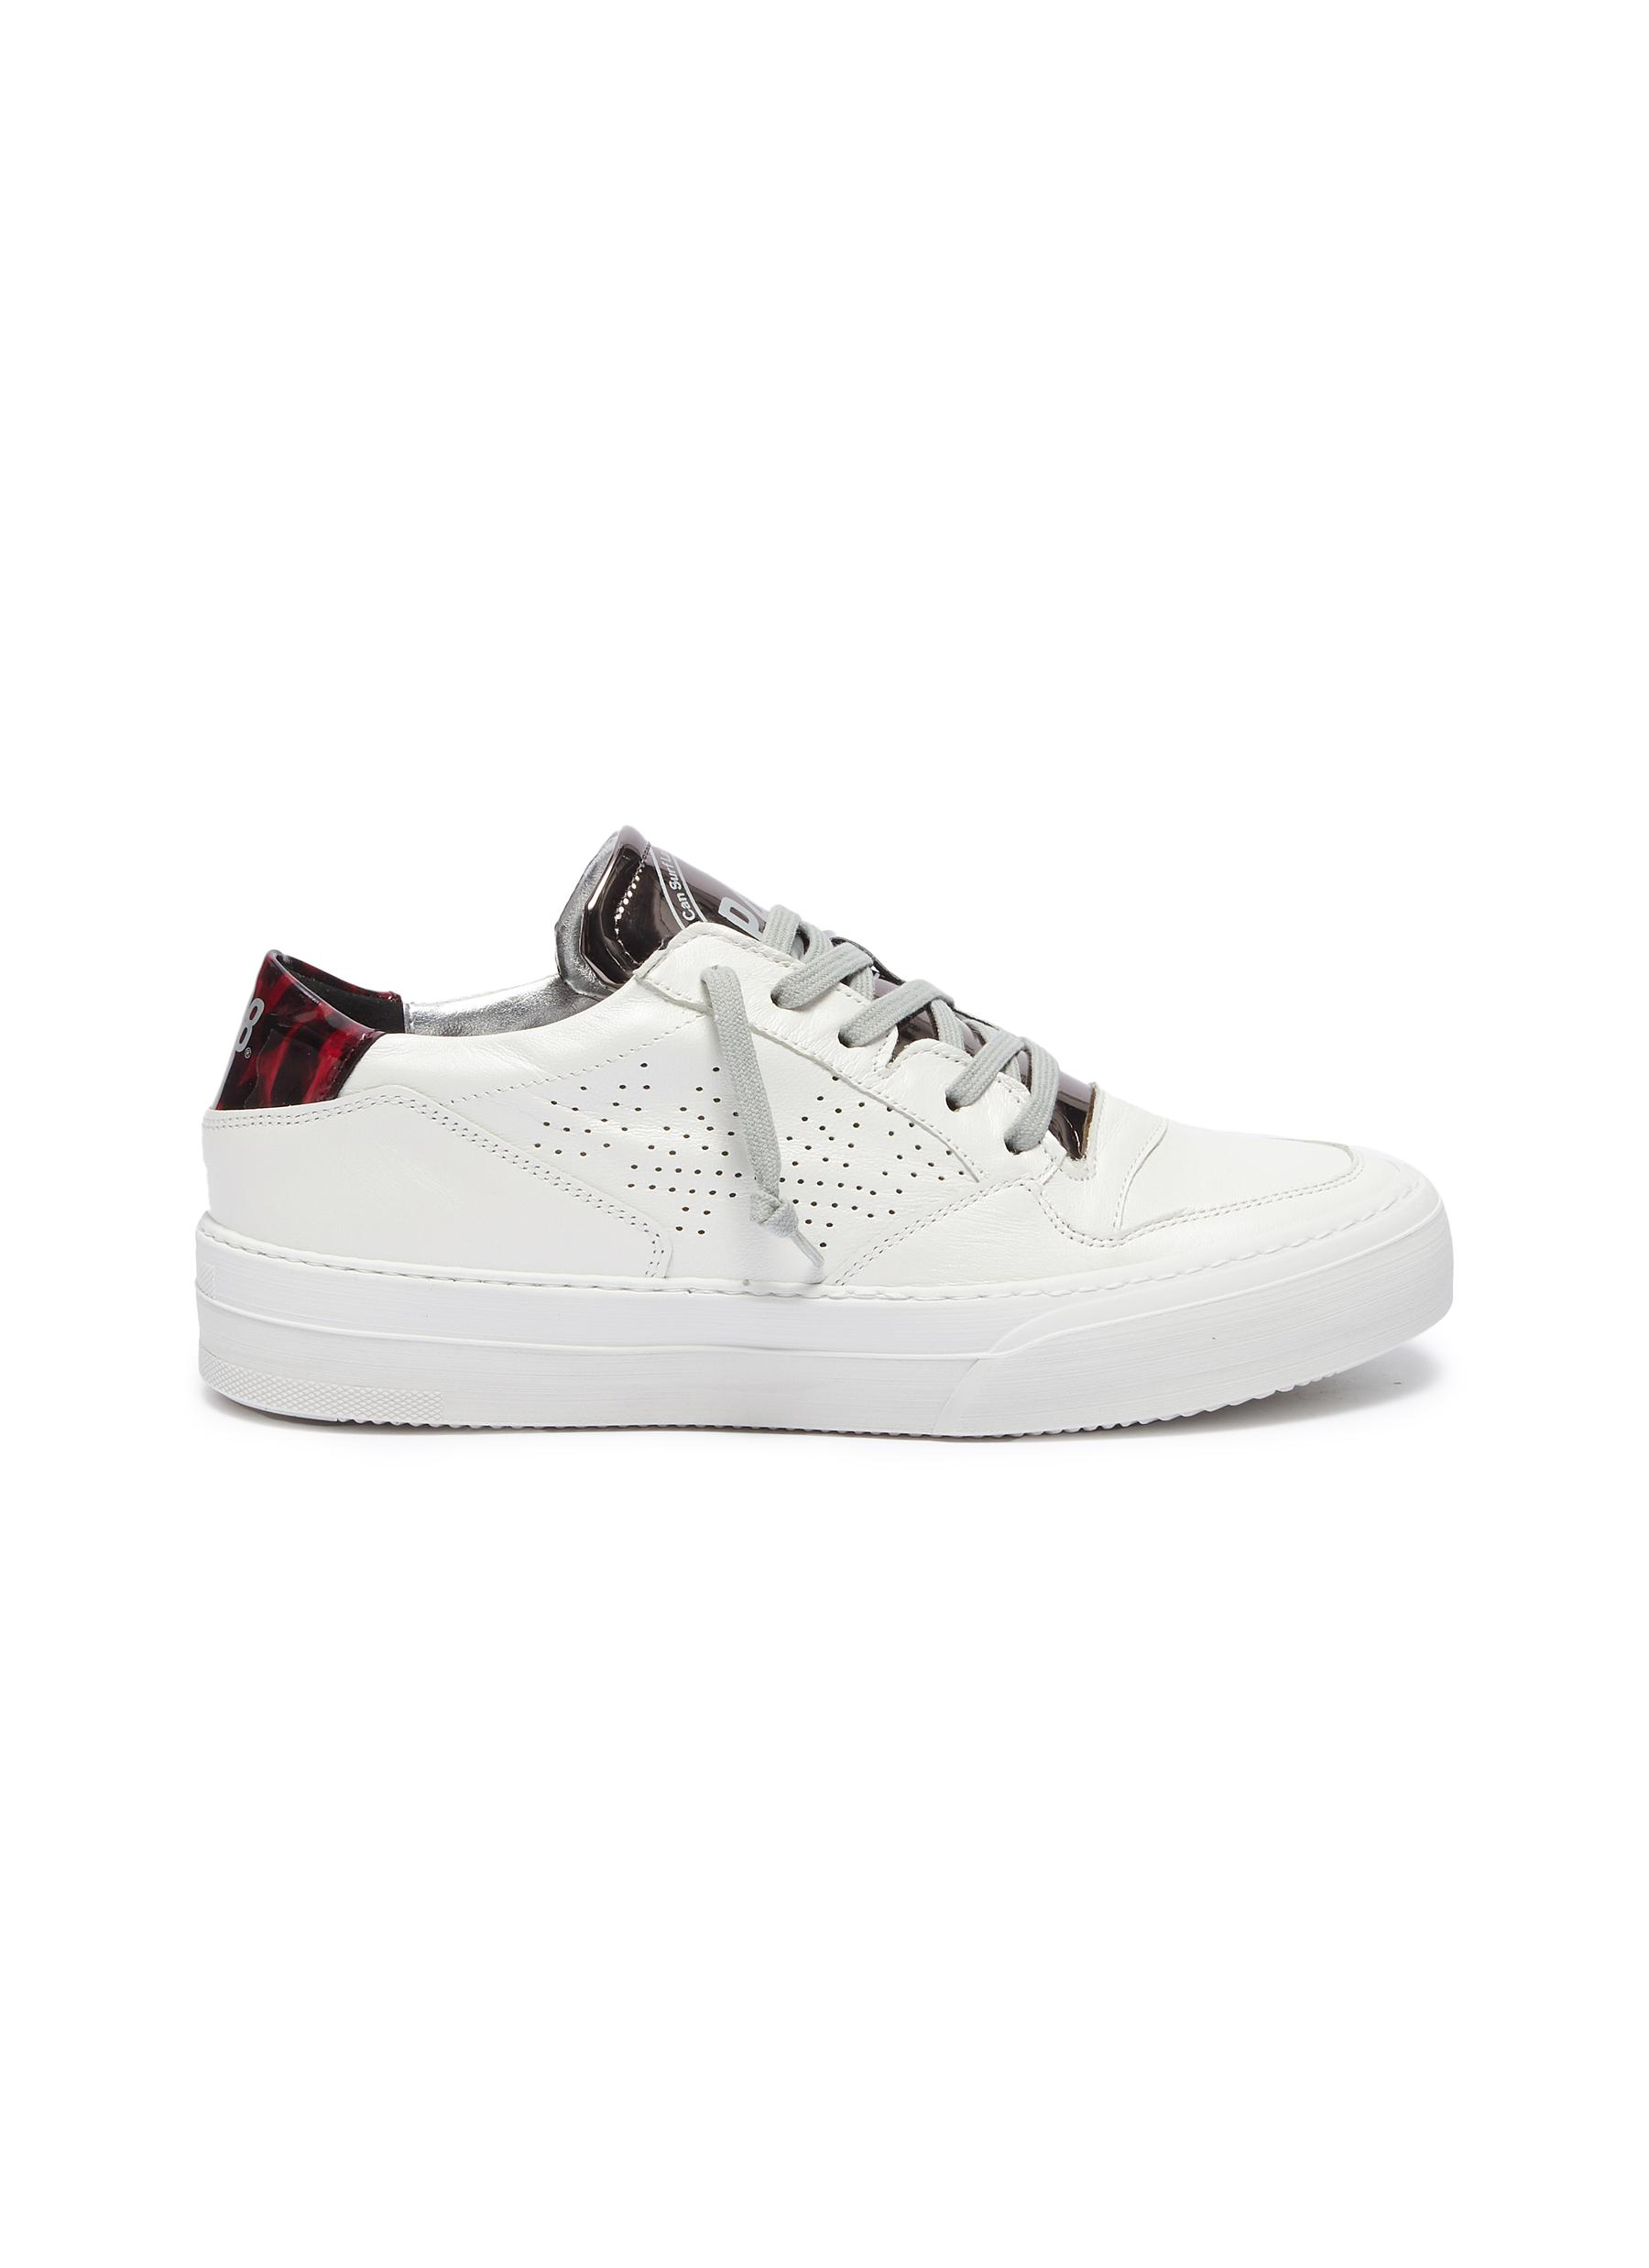 Space panelled leather sneakers by P448